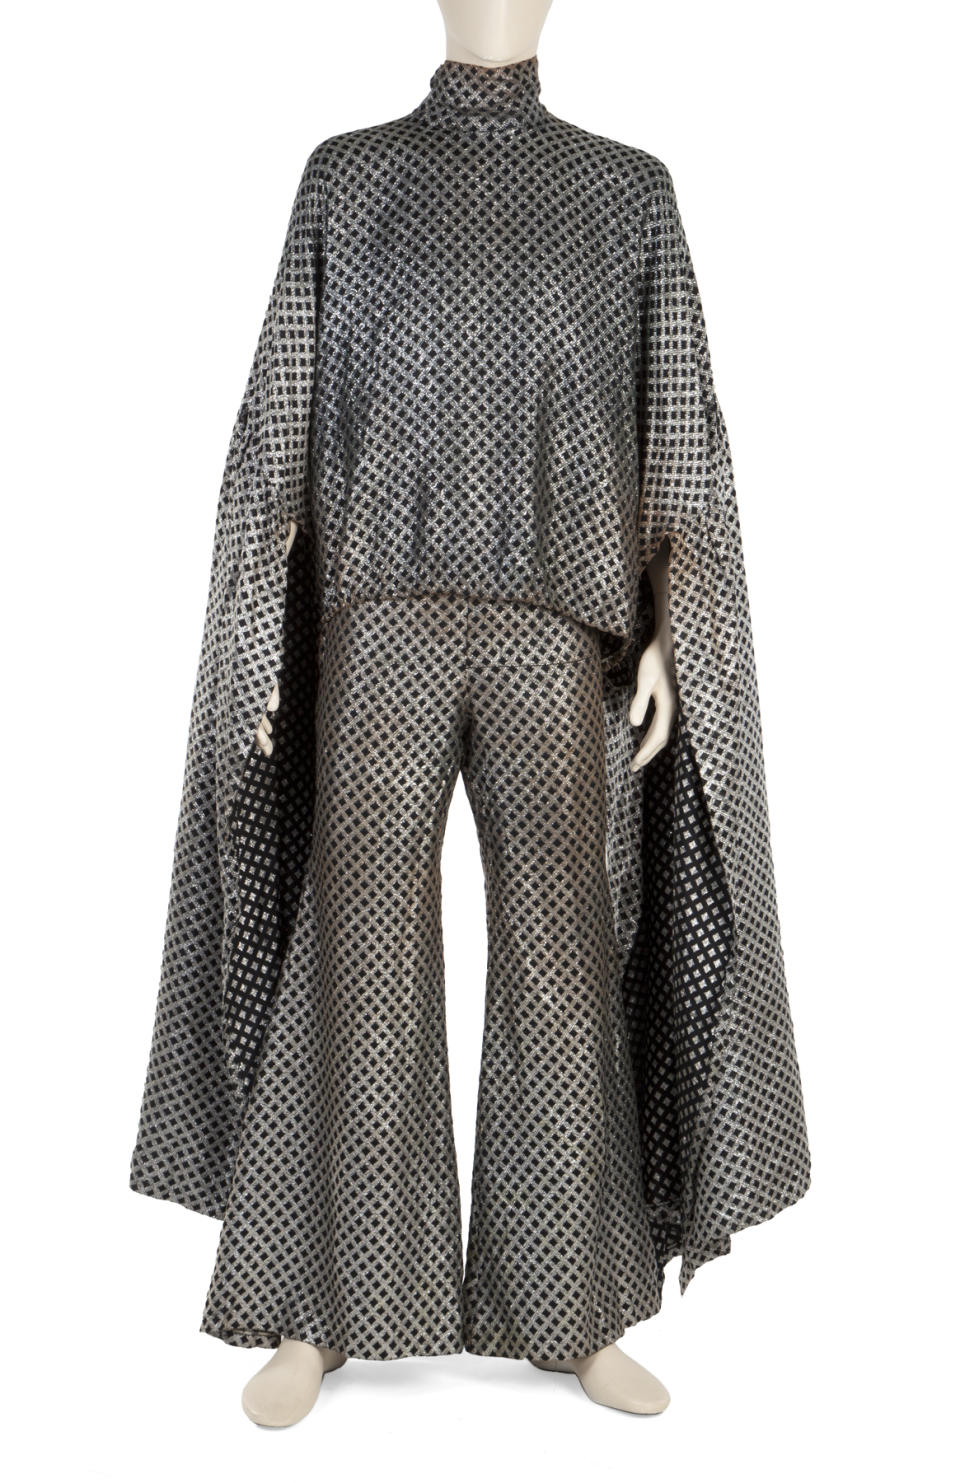 This eye-catching outfit once worn by Little Richard is among a trove of the rock pioneer's belongings going under the hammer (Julien's Auctions/PA)